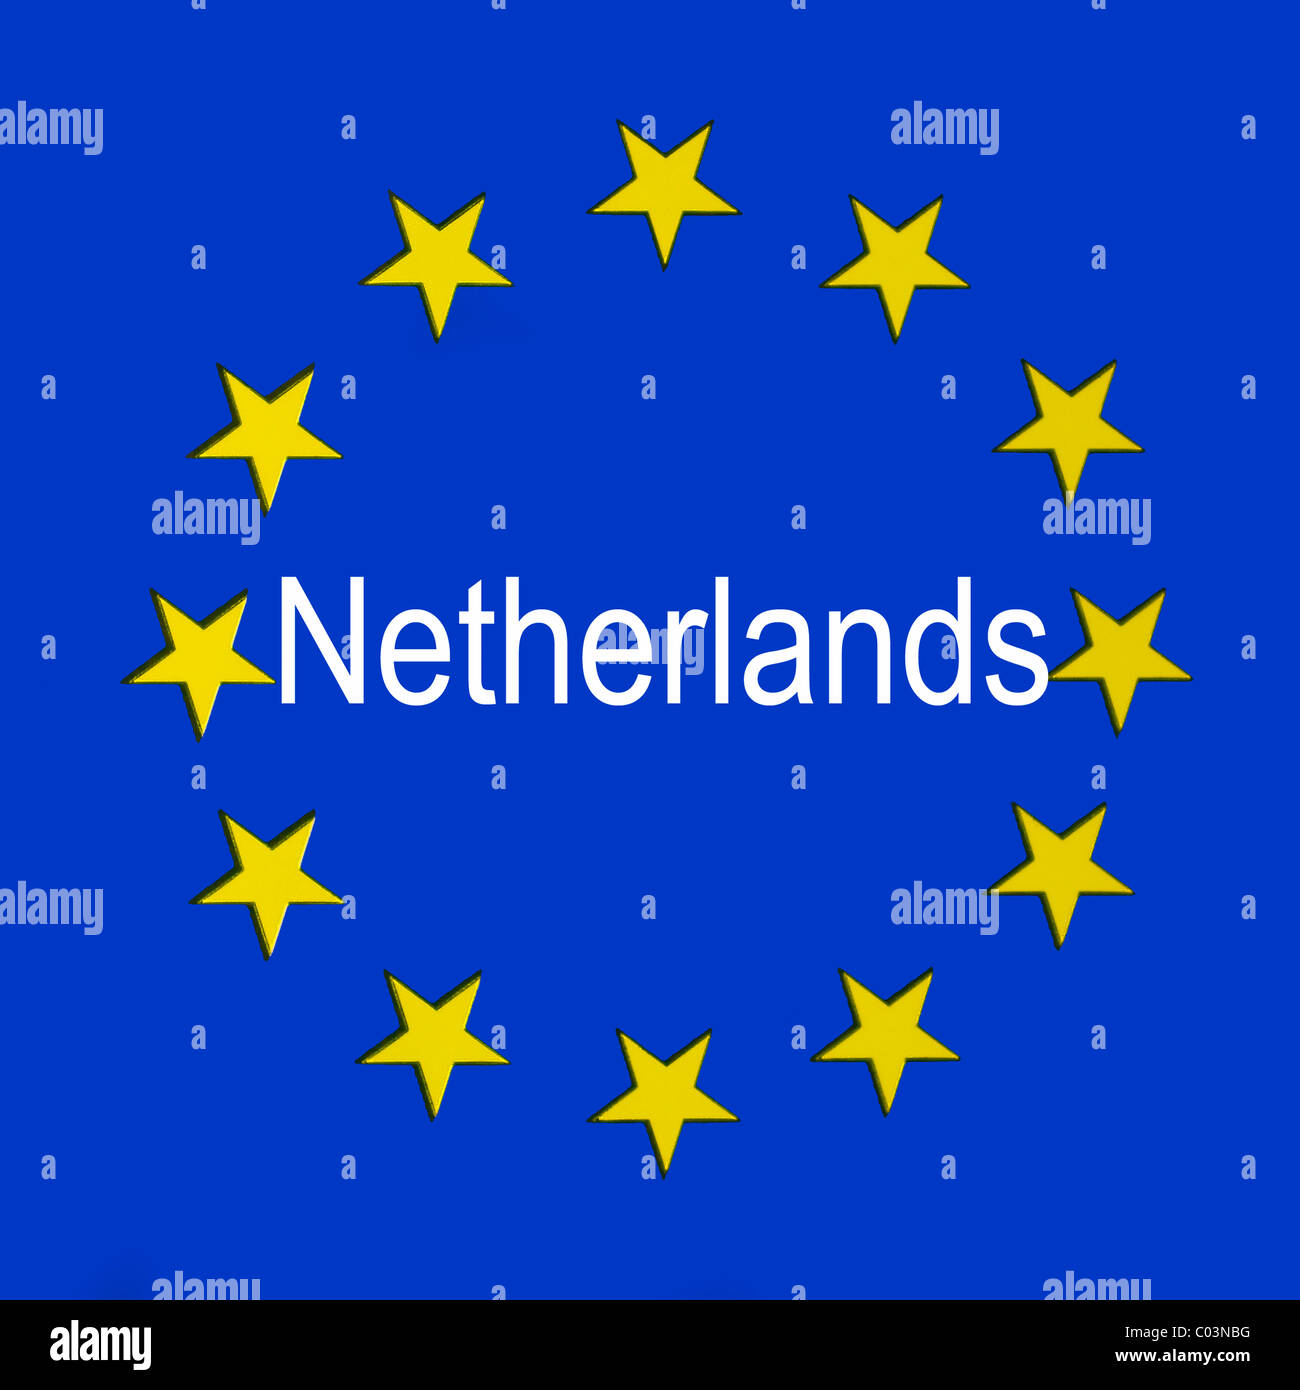 Netherlands in the European union flag Stock Photo